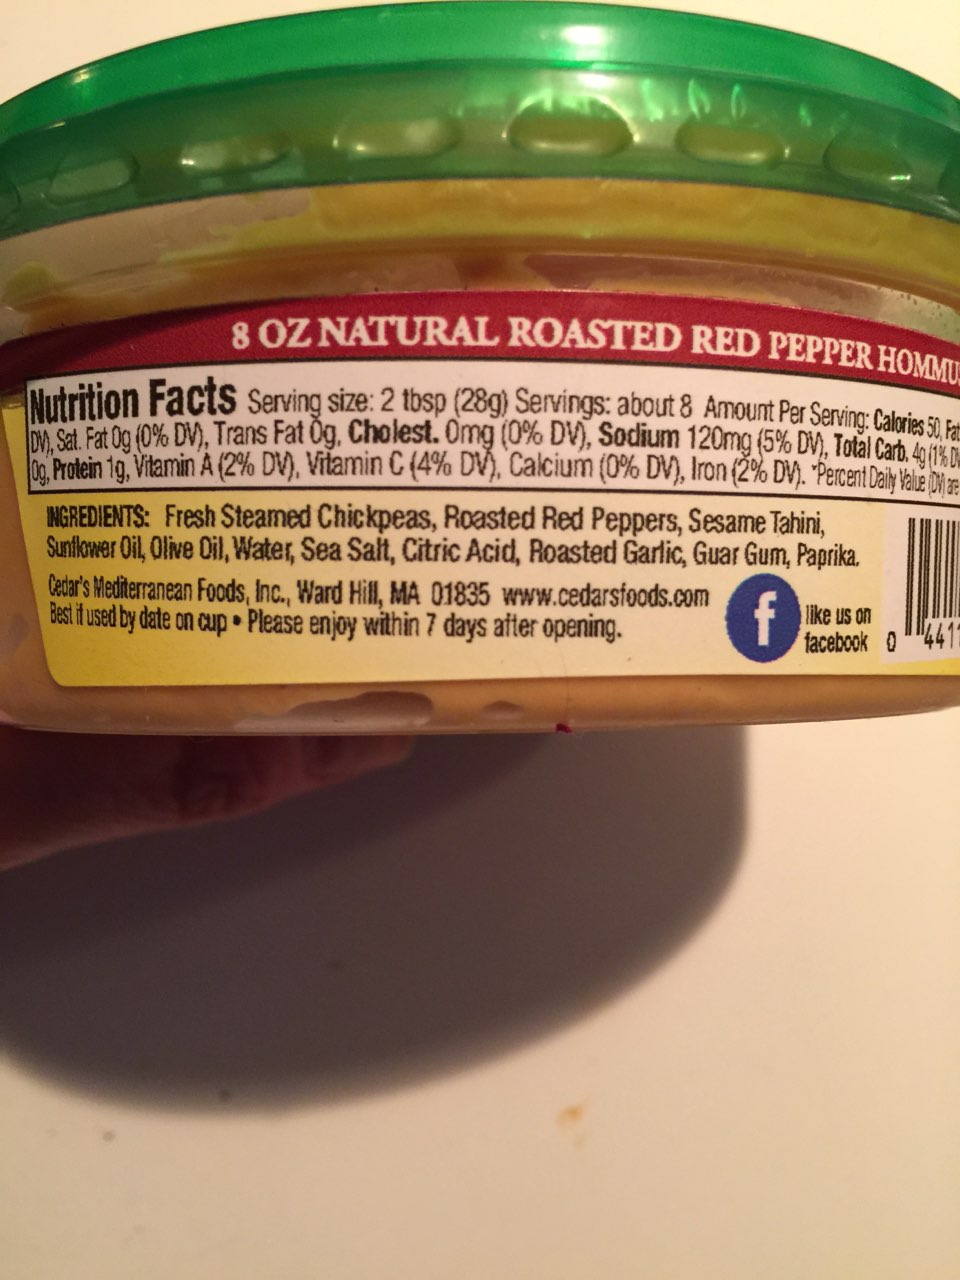 Cedars hommus roasted red pepper calories nutrition analysis just checked the label this product no longer contains sodium benzoate and potassium sorbate sisterspd